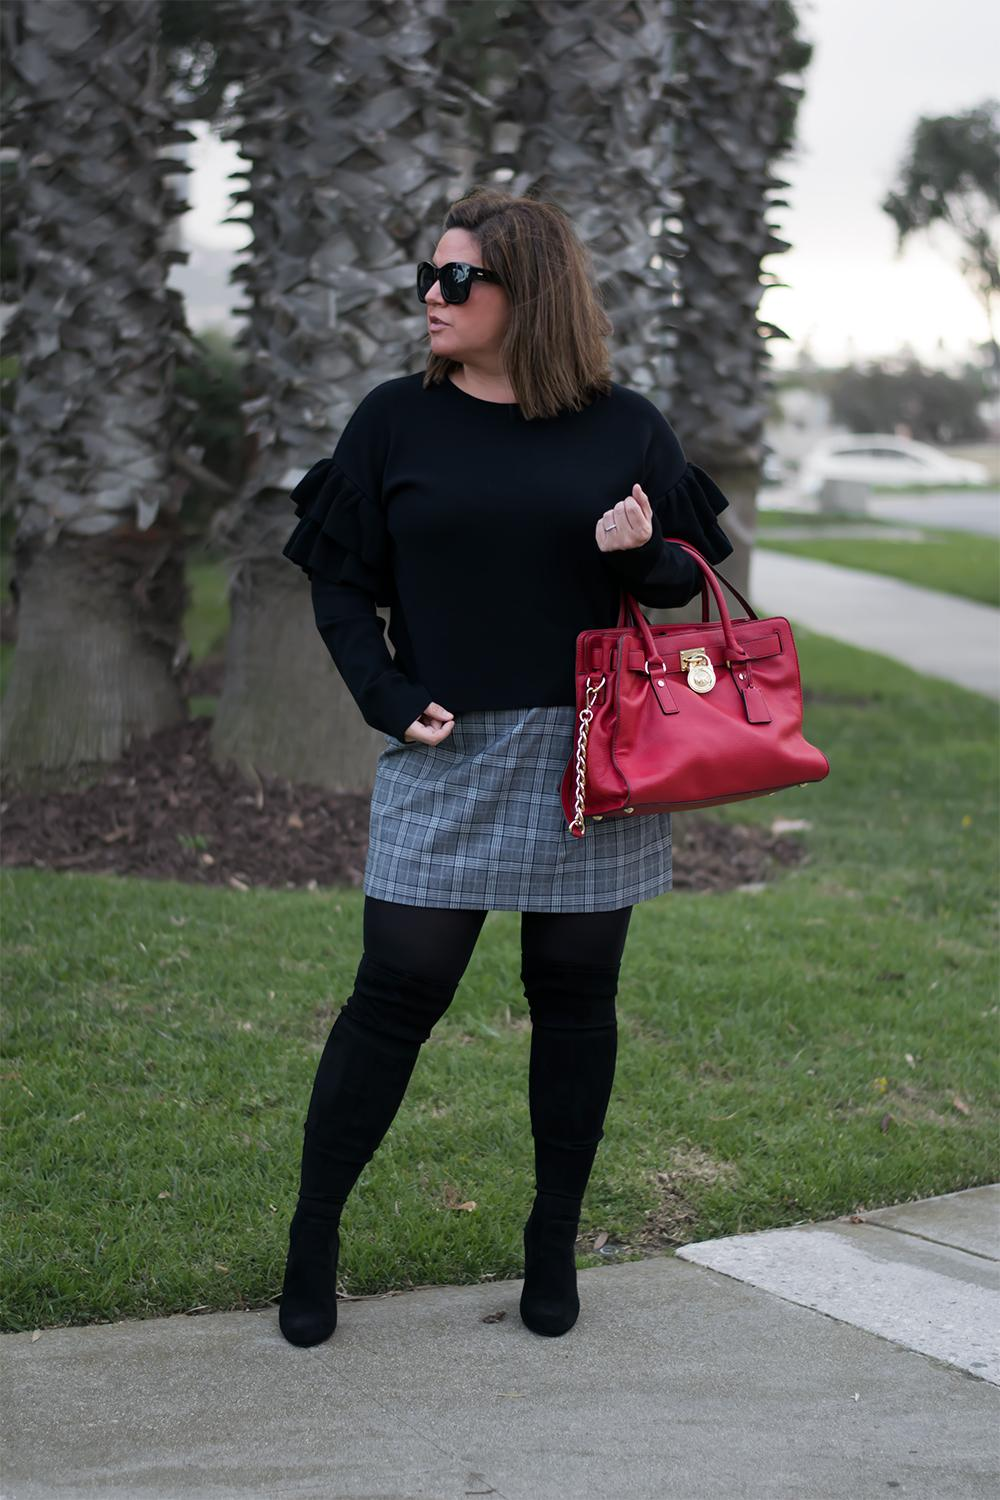 HM-Ruffle-Sleeve-Sweater-Outfit-Street-Style-Looks-to-Copy-in-2017-Barefoot-in-LA-Fashion-Blog-Style-Ideas-0832